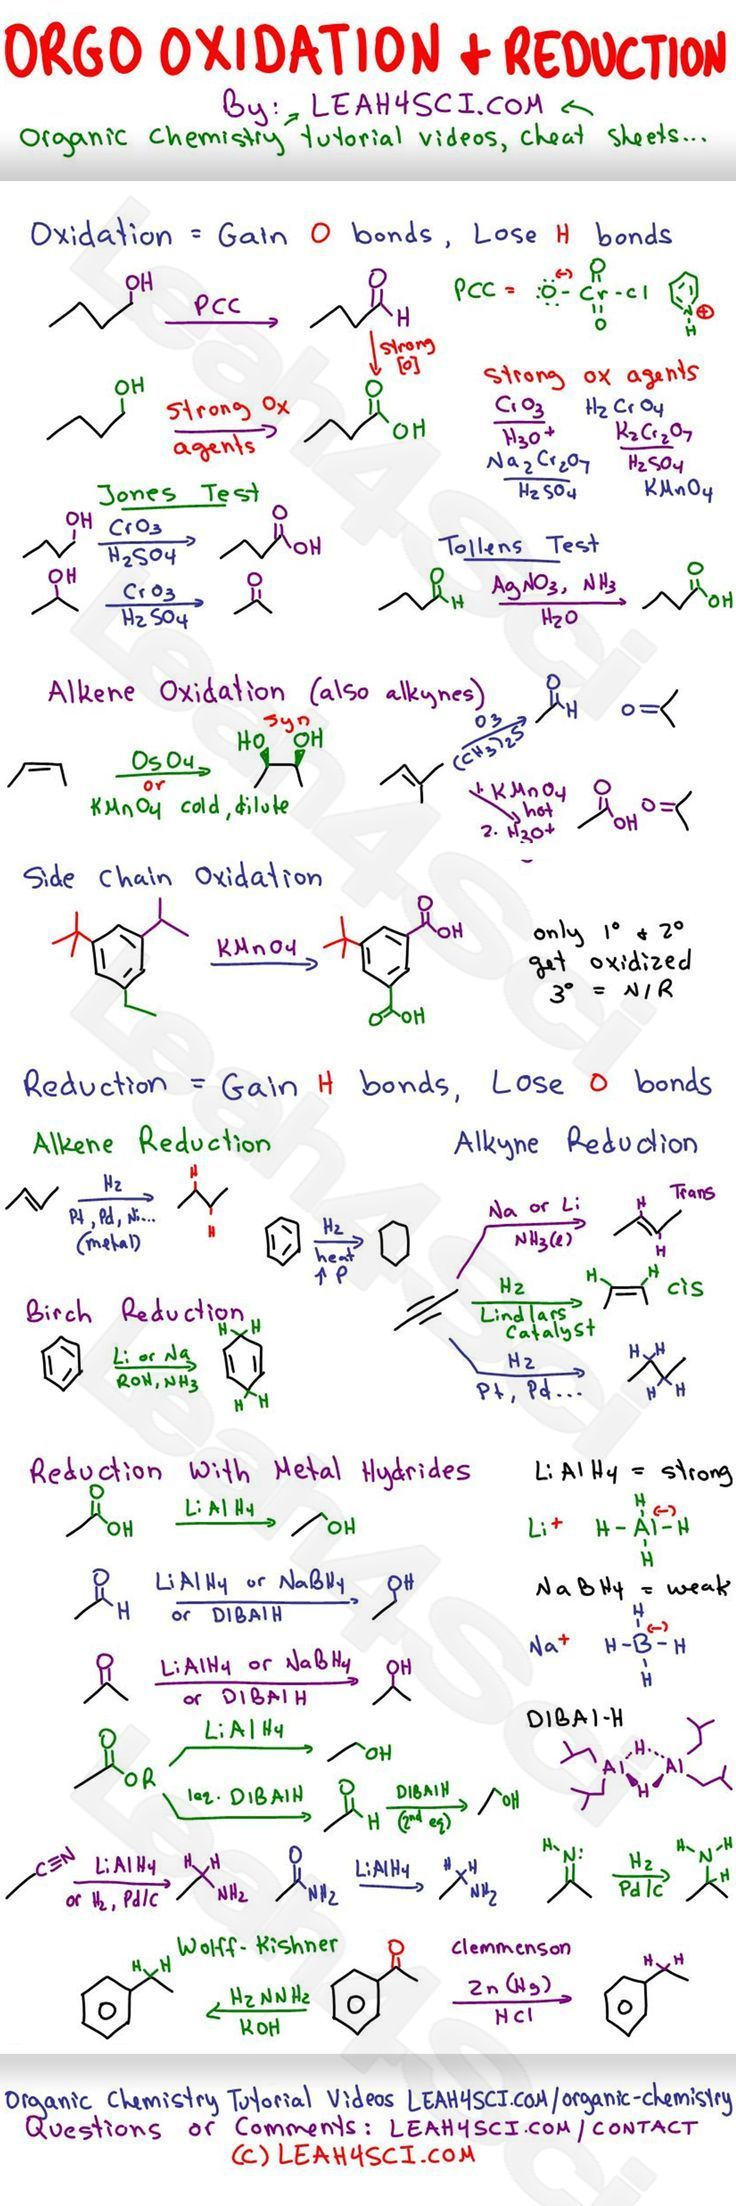 27 best gamsat images on pinterest school gym and physical science organic chemistry oxidation and reduction reactions study guide cheat sheet covering the various redox reactions in organic chemistry 1 and 2 including fandeluxe Gallery